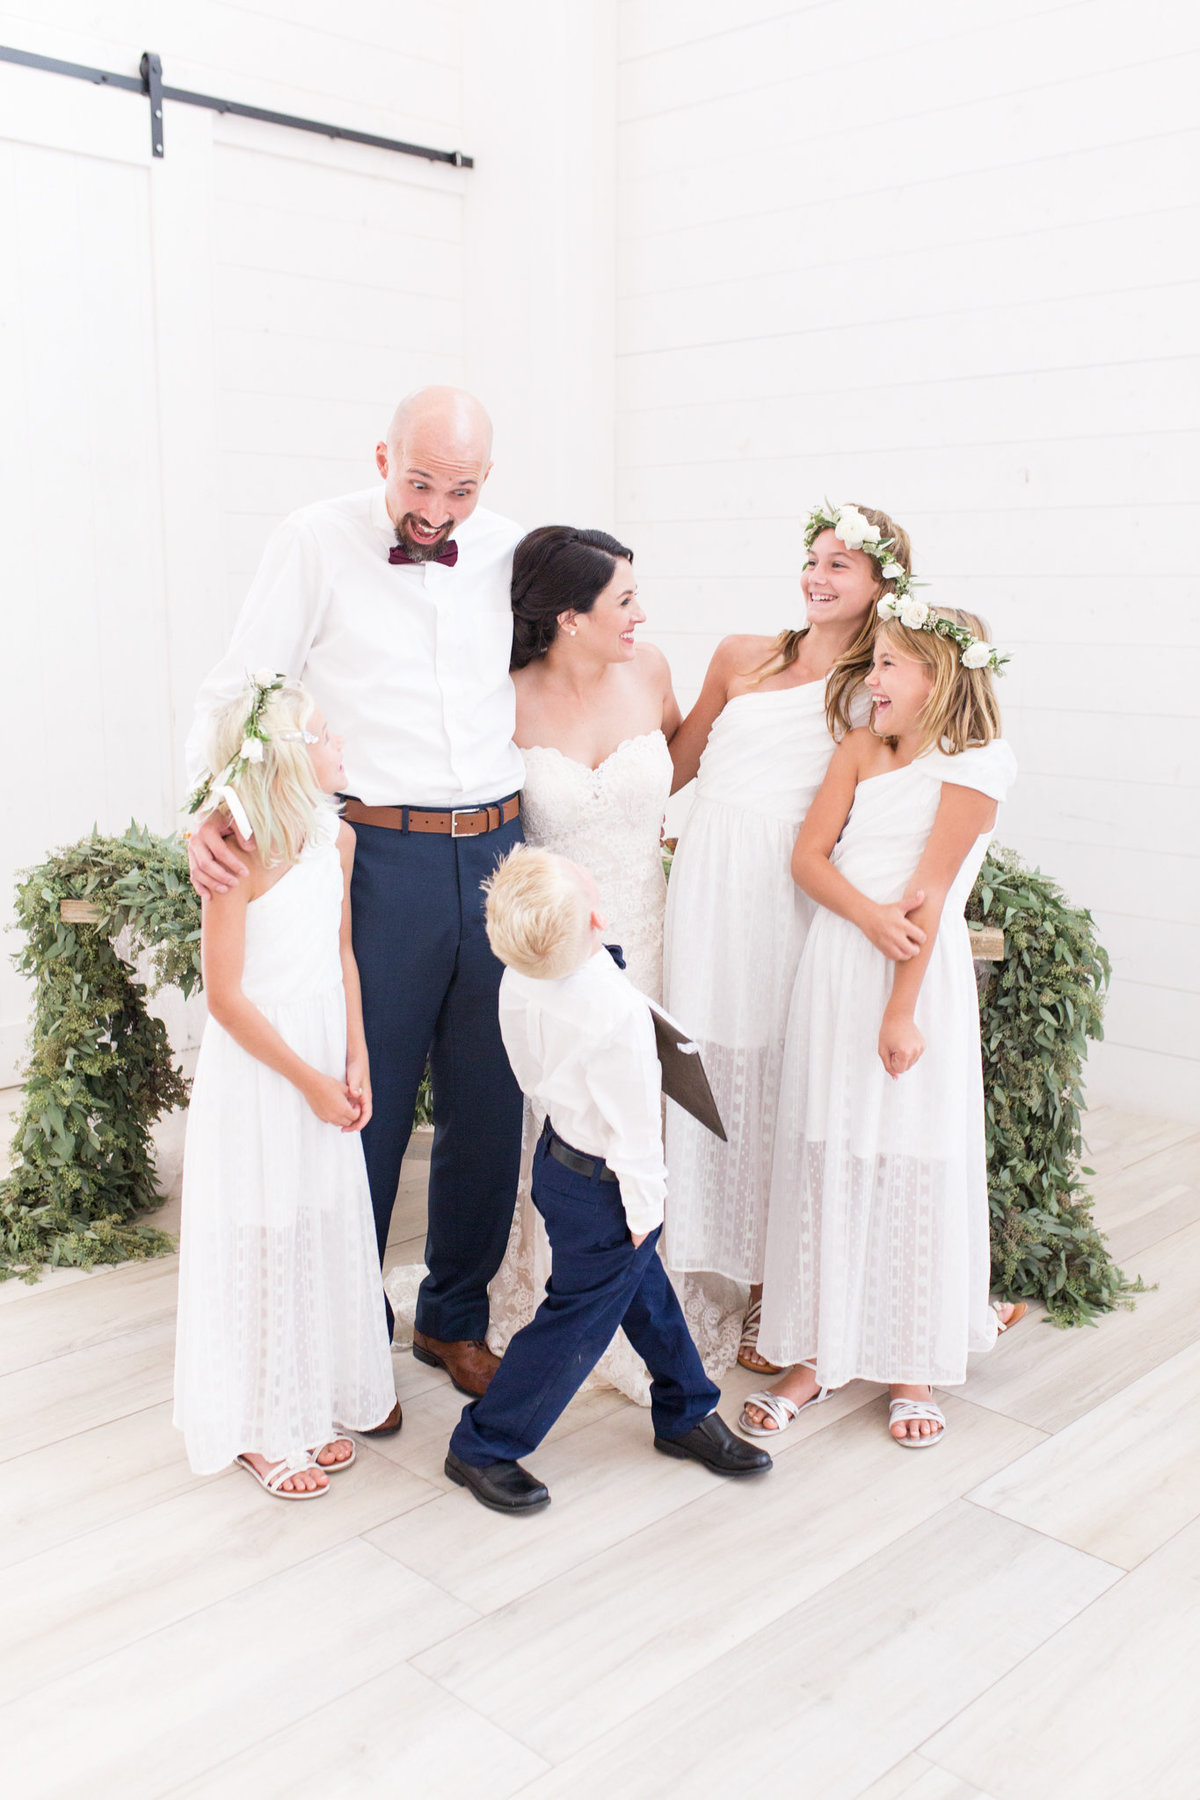 Nick & Sam Wedding | The Nest at Ruth Farms | Sami Kathryn Photography | Dallas Wedding Photographer-169